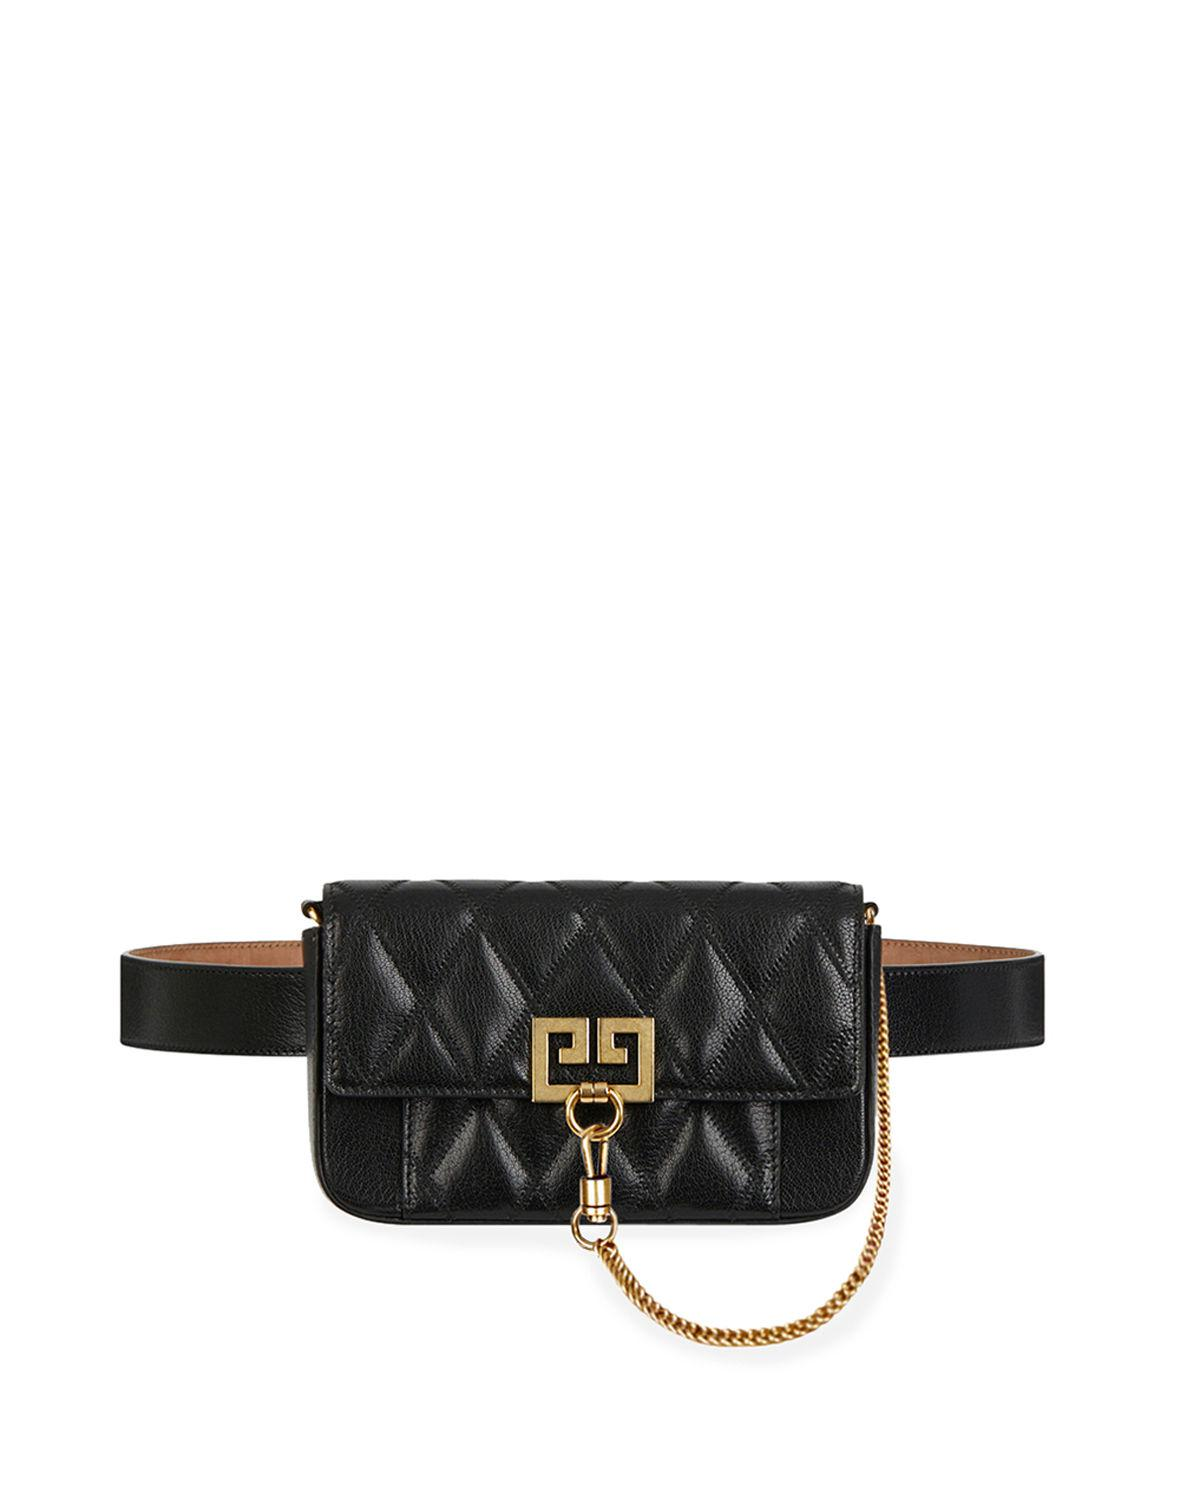 Lyst - Givenchy Pocket Mini Pouch Convertible Clutch belt Bag ... 86f9131a770d5